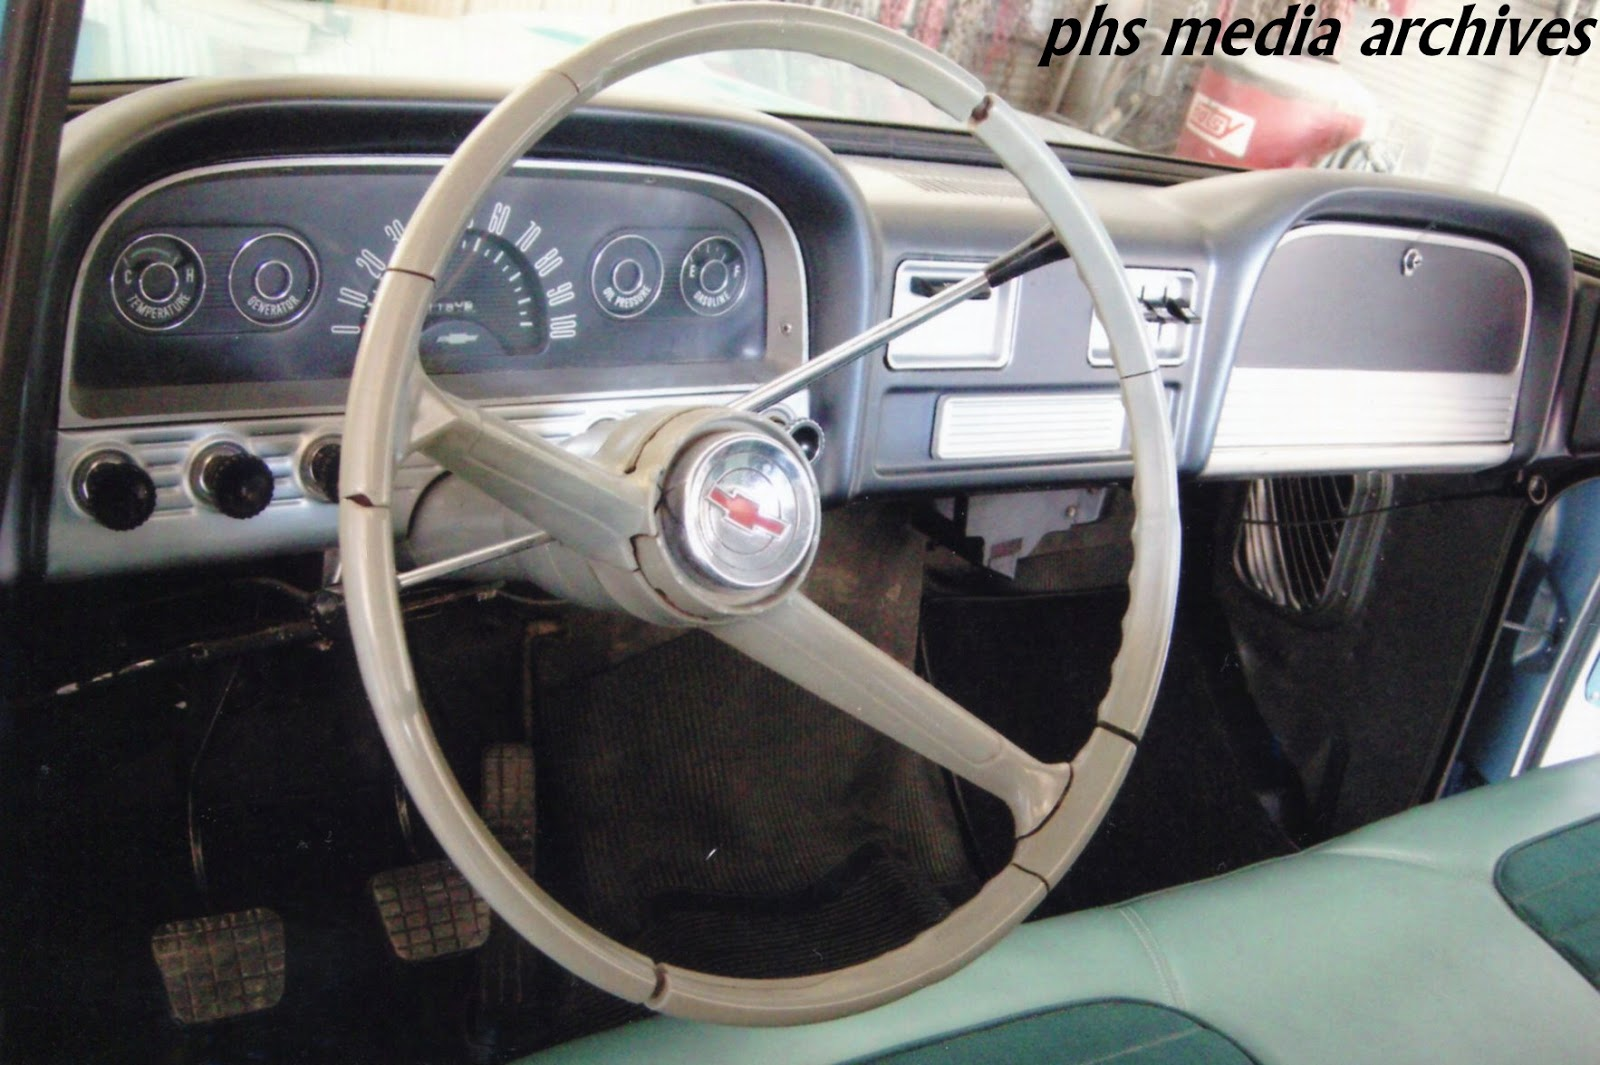 1961 Chevrolet Apache Resto Part A Initial Exam And Tear Down 1960 Studebaker Lark Wiring Diagram The Bench Seat Appears To Have Been Reupholstered Or Perhaps Taken From Different Truck